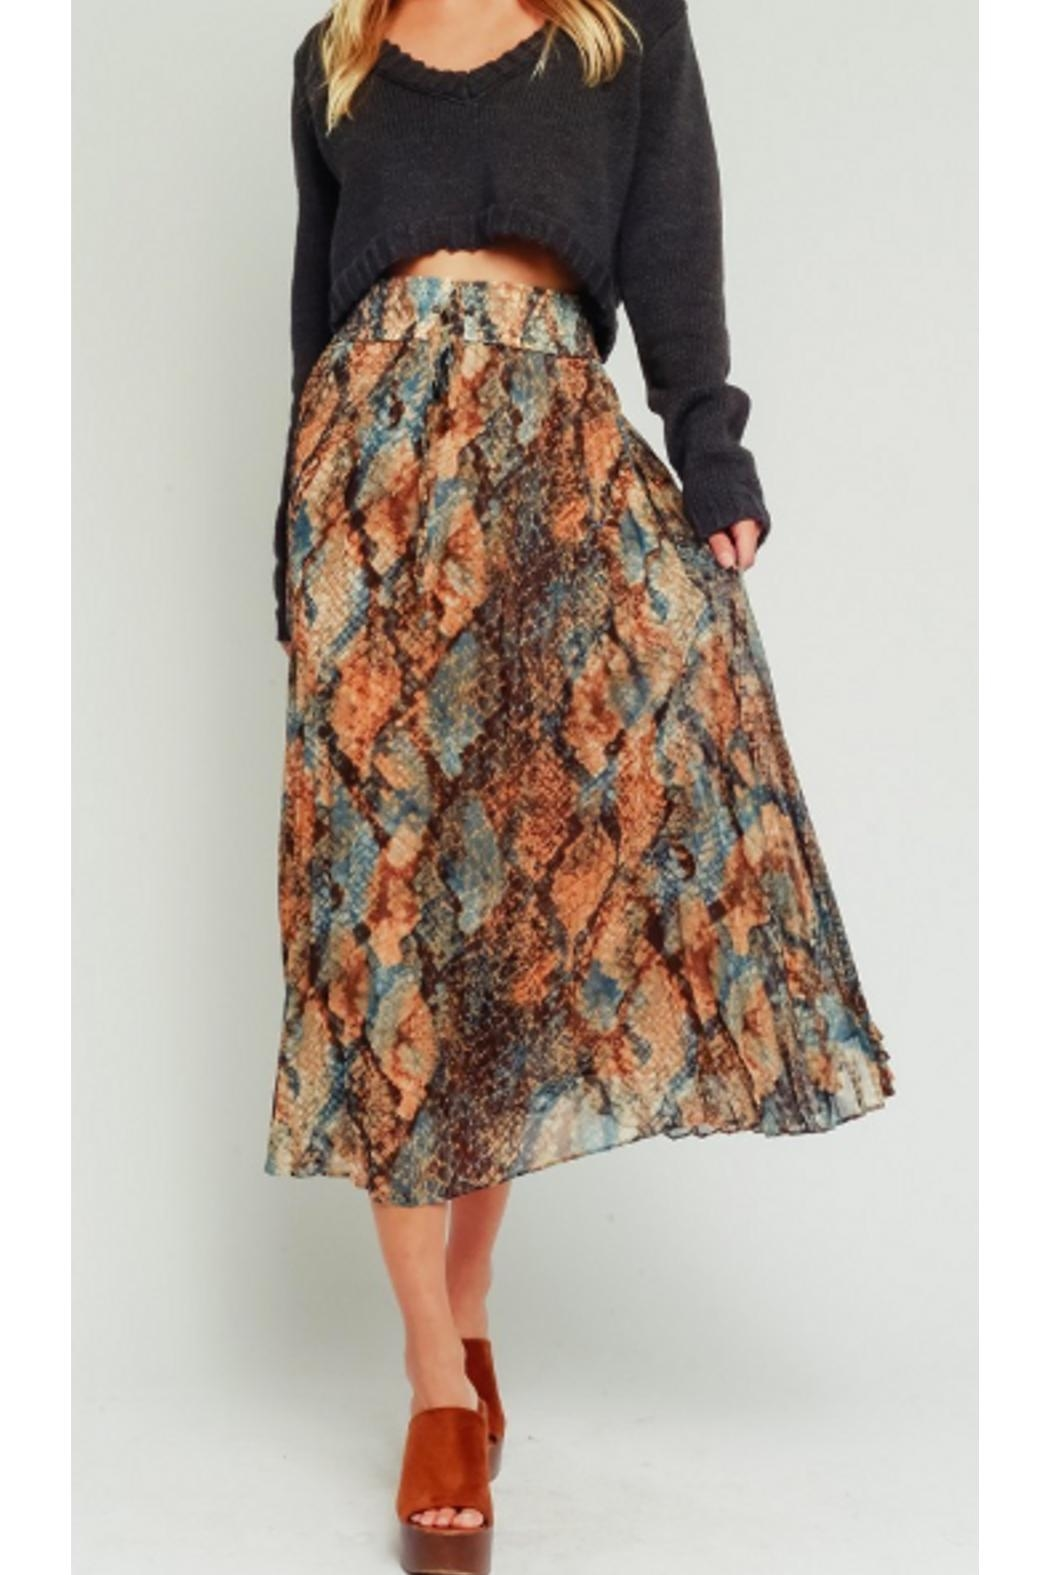 Olivaceous Snake Pleated Skirt - Main Image